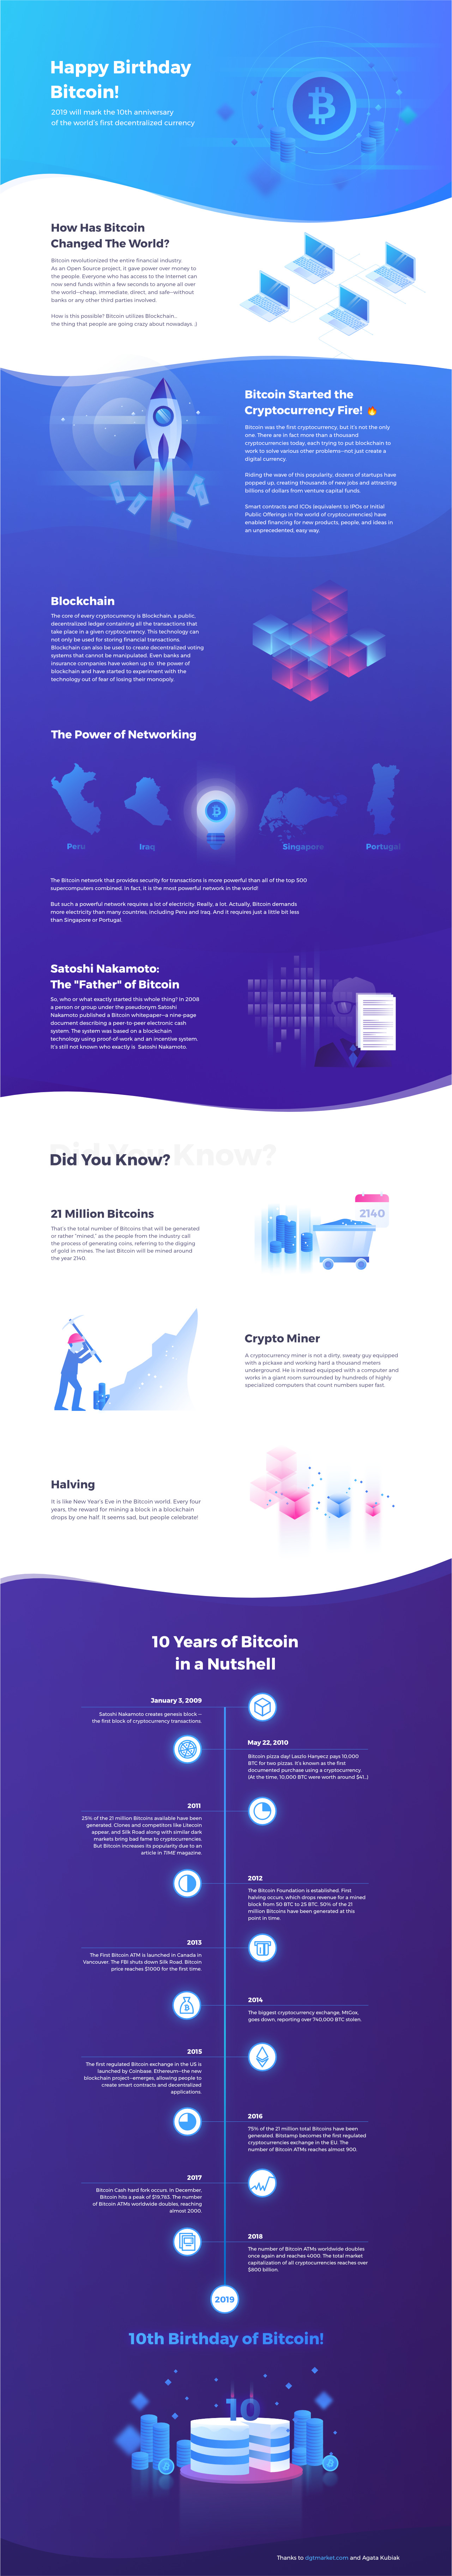 10th Anniverary of Bitcoin infographics